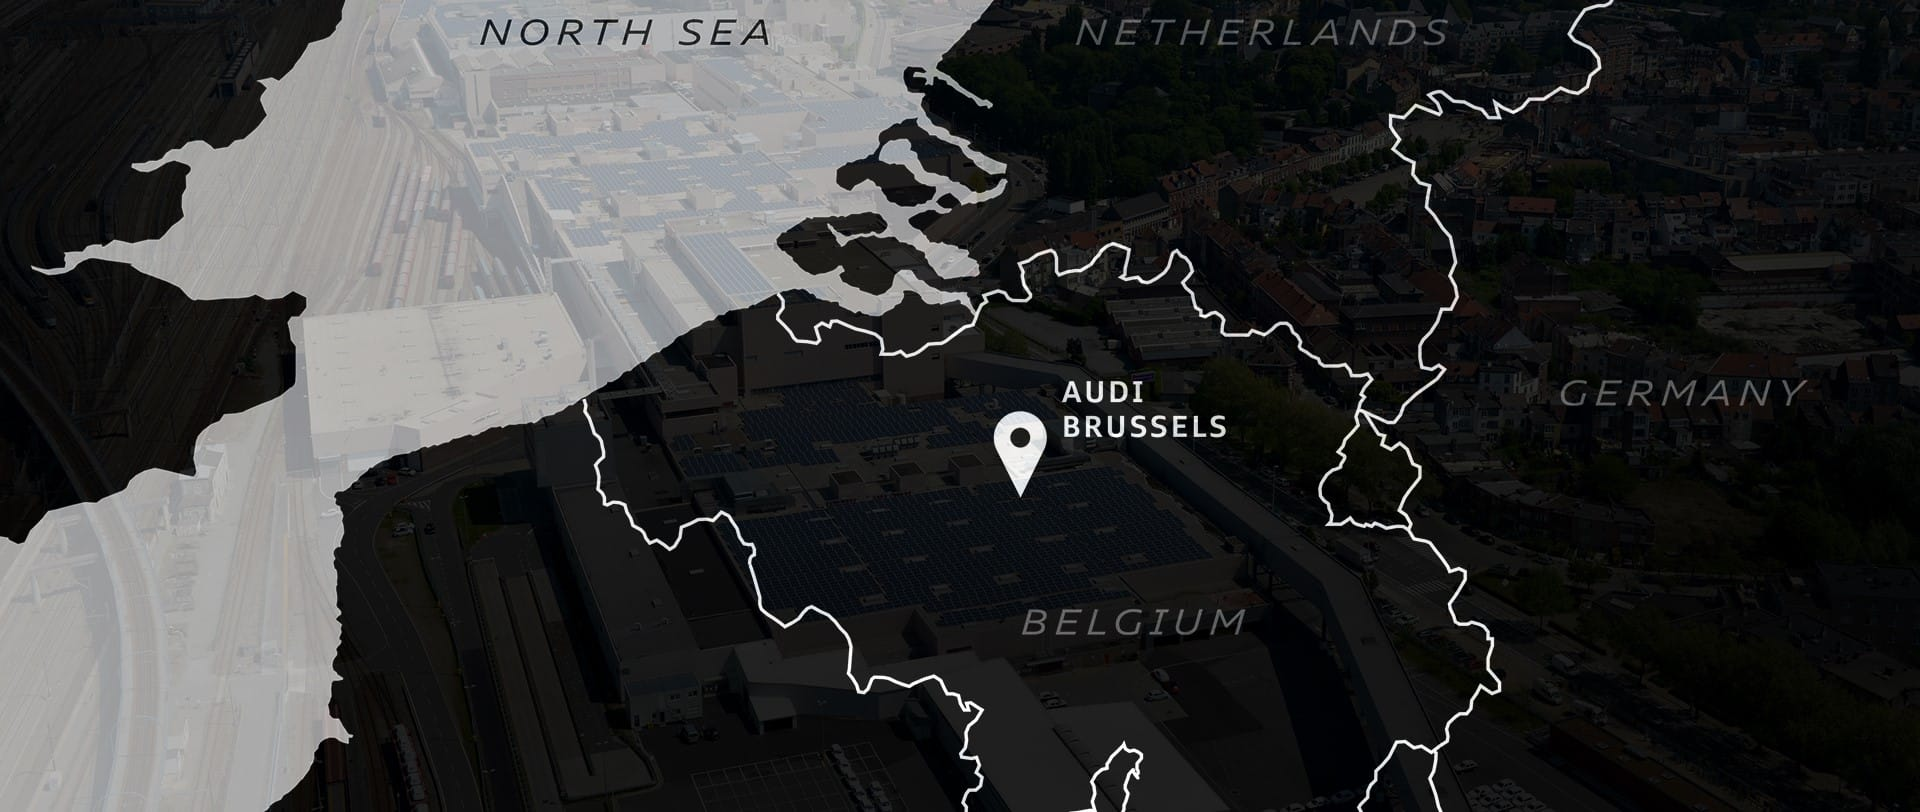 Brussels_production_Motive_06_Map_1920x1080_ENG_V2.jpg